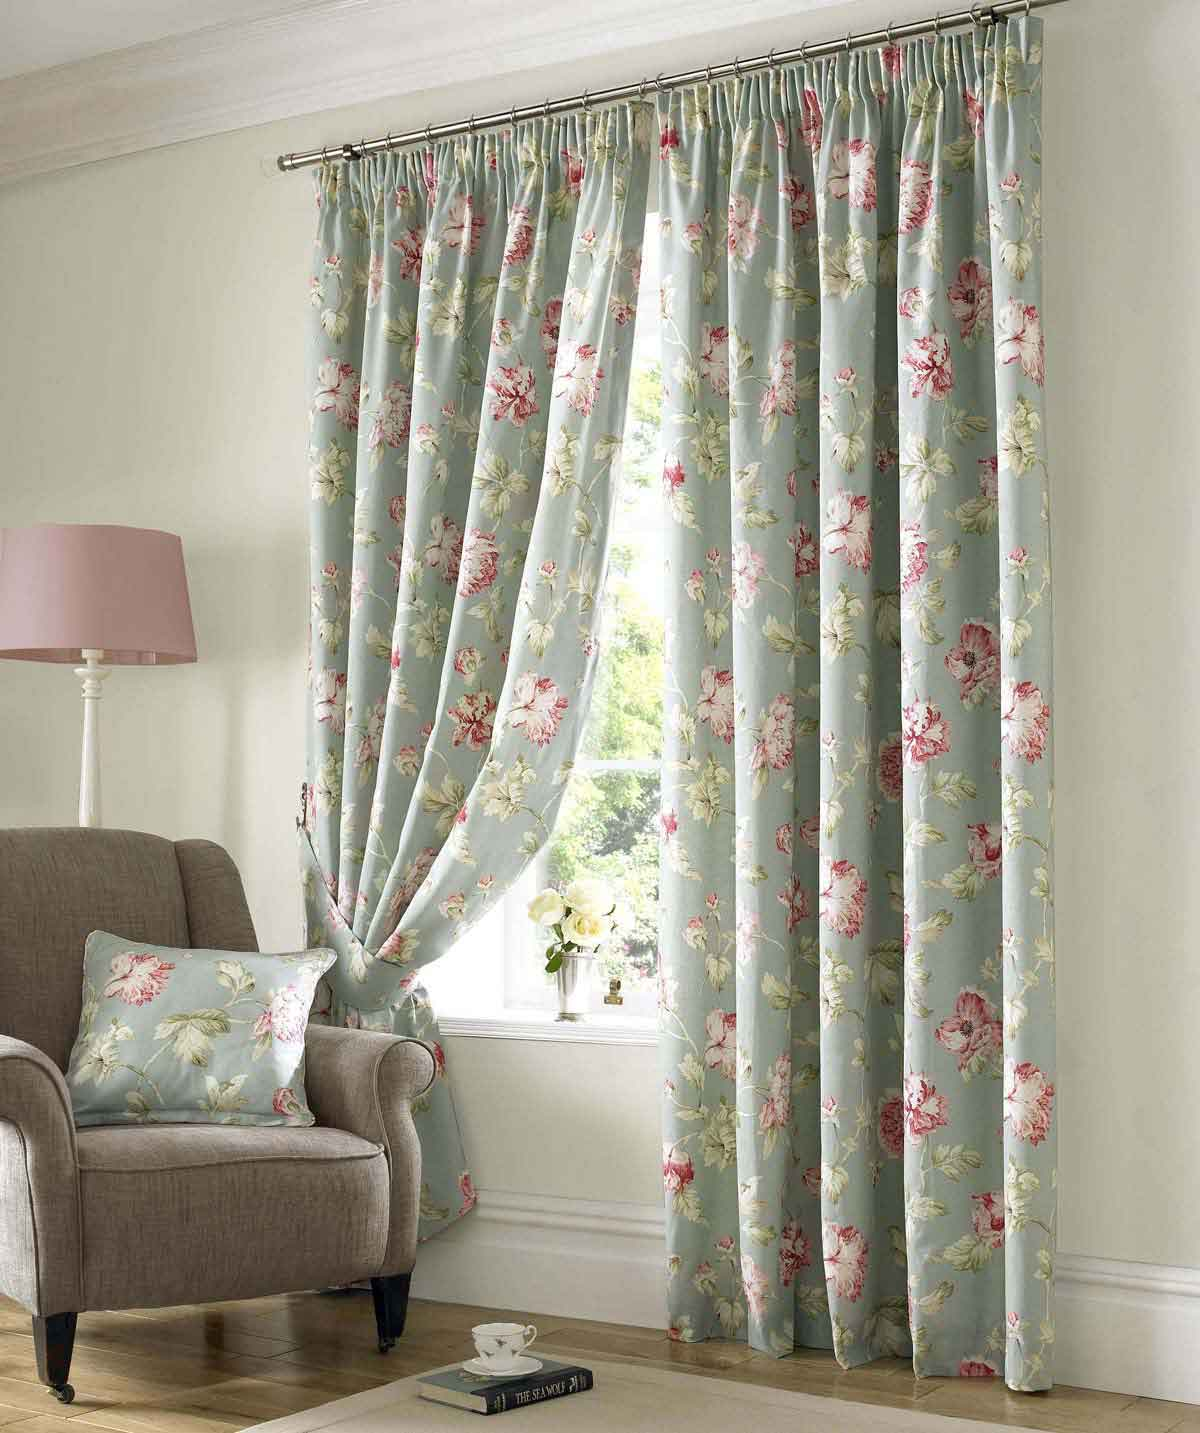 Curtains For Long Windows 2015 Summer Curtain Styles For Long Windows American Made